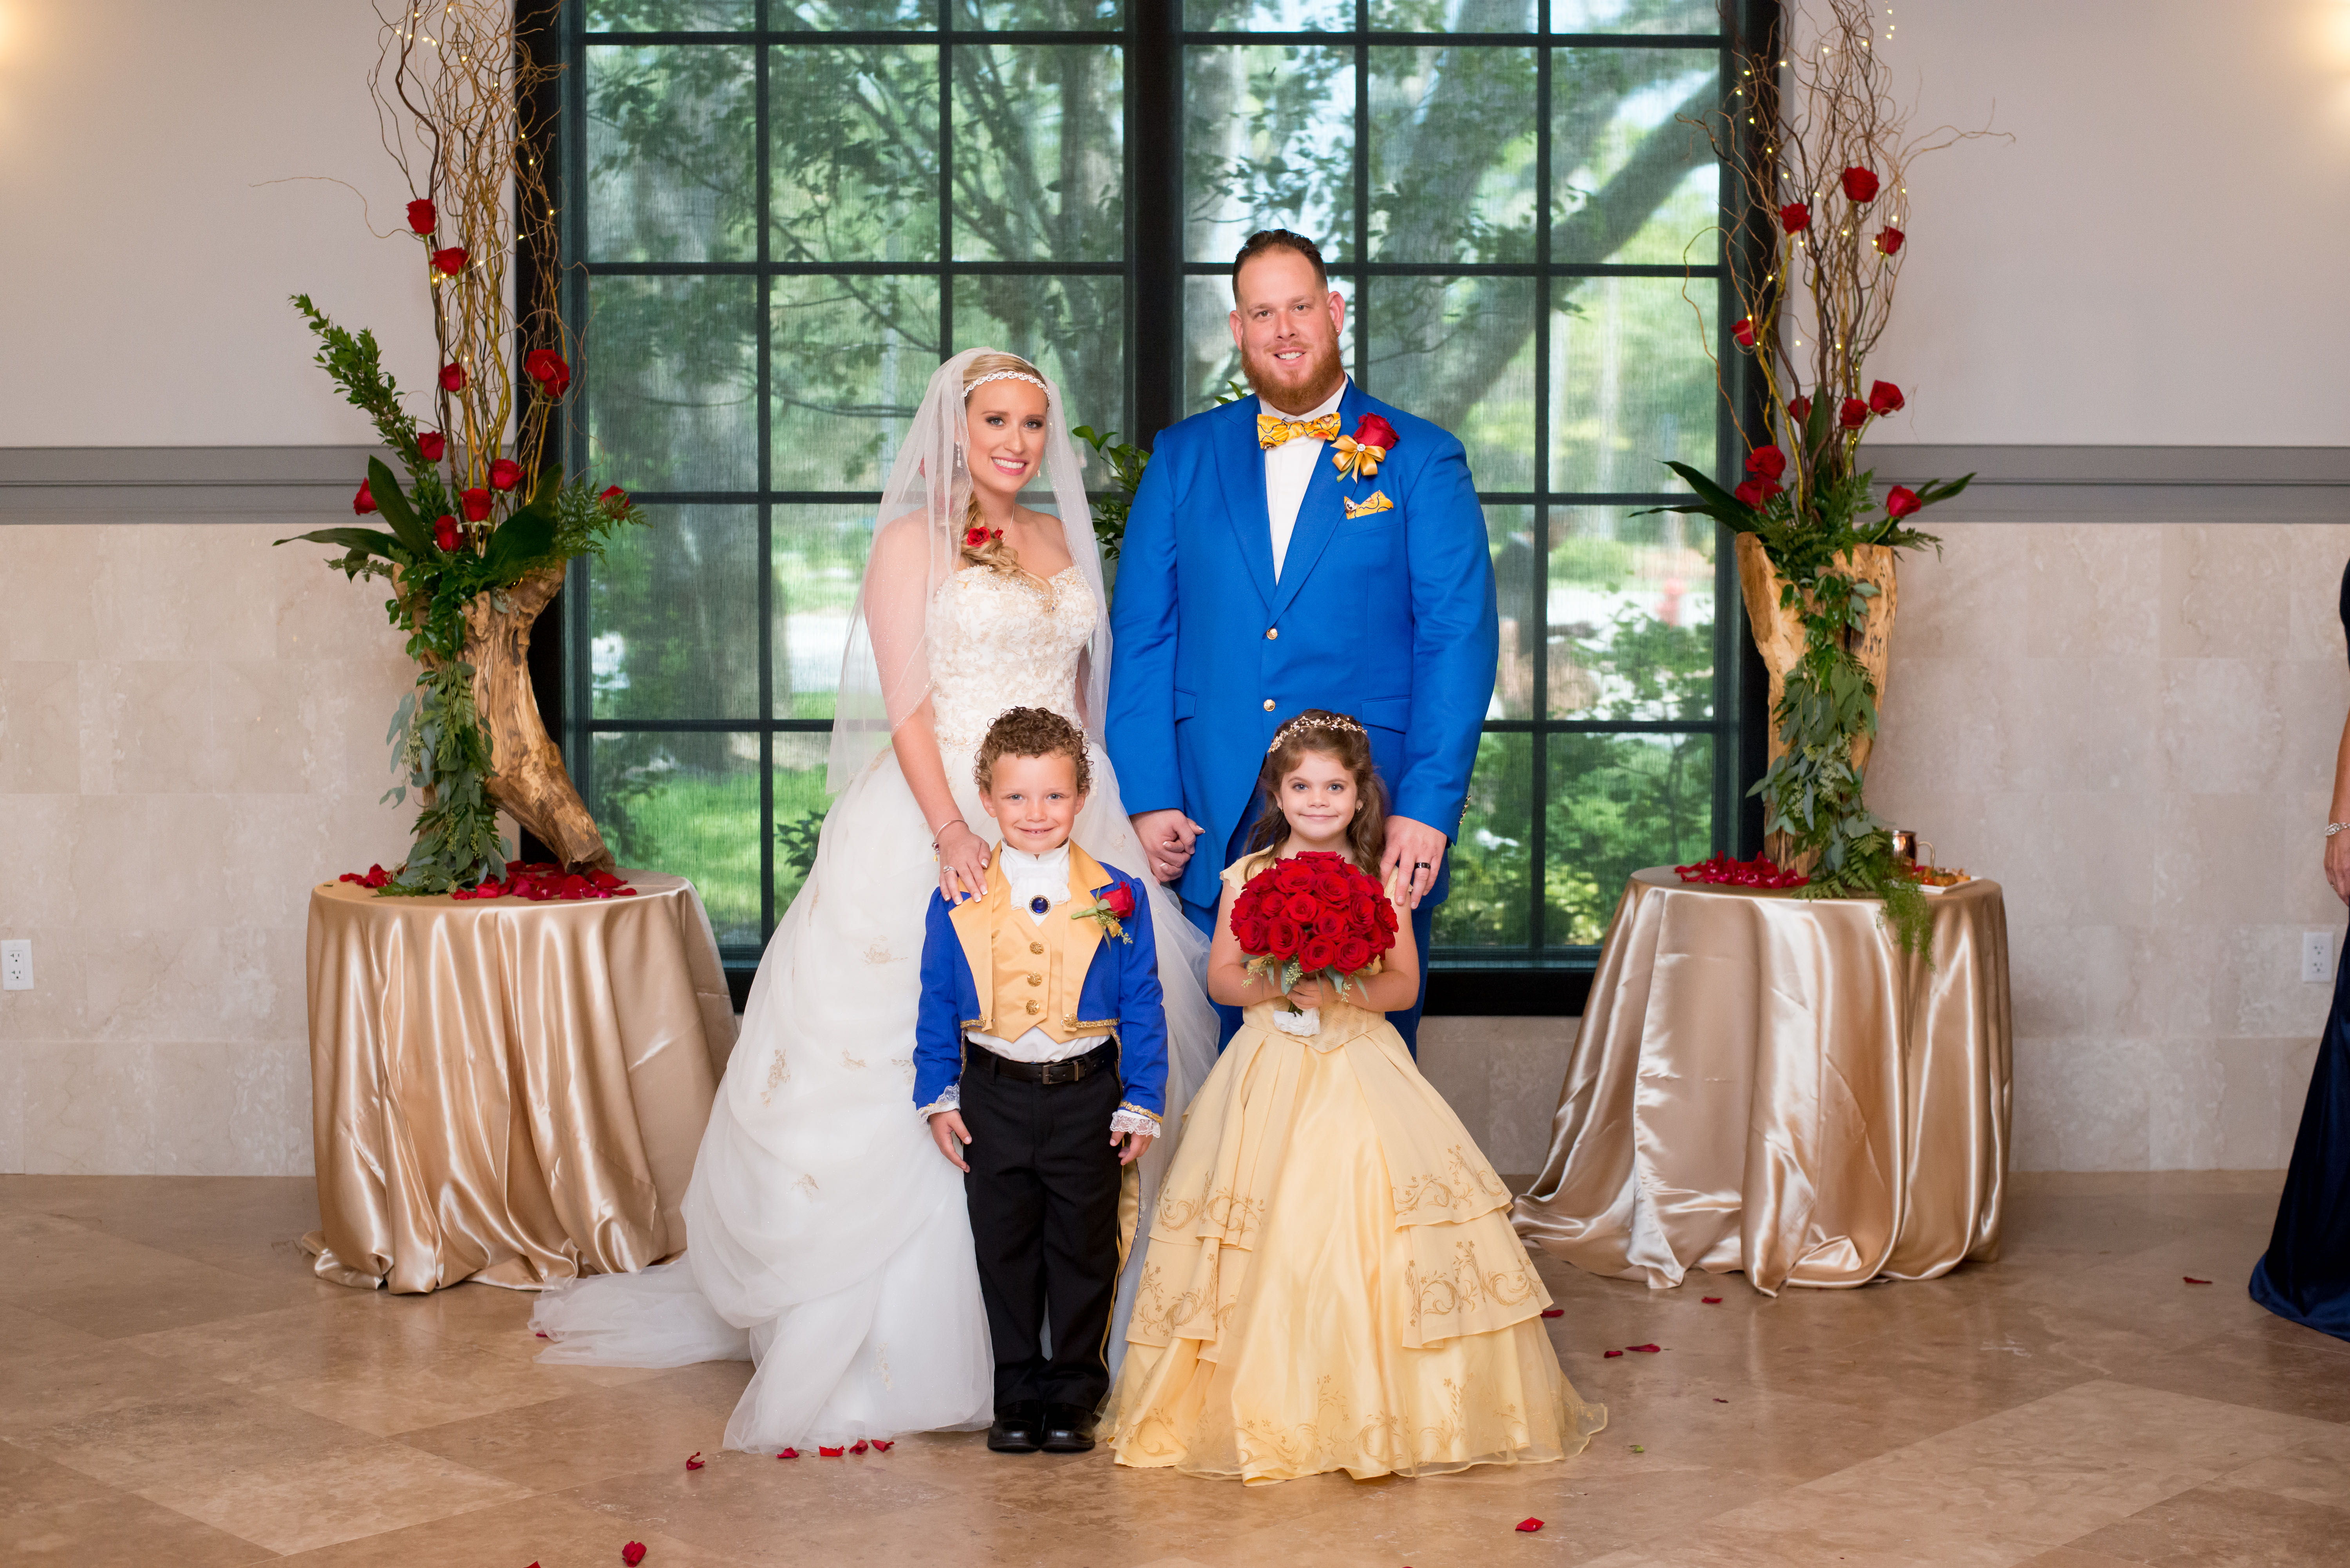 Beauty And The Beast Themed Wedding.Our Disney Inspired Beauty And The Beast Themed Wedding Meet The